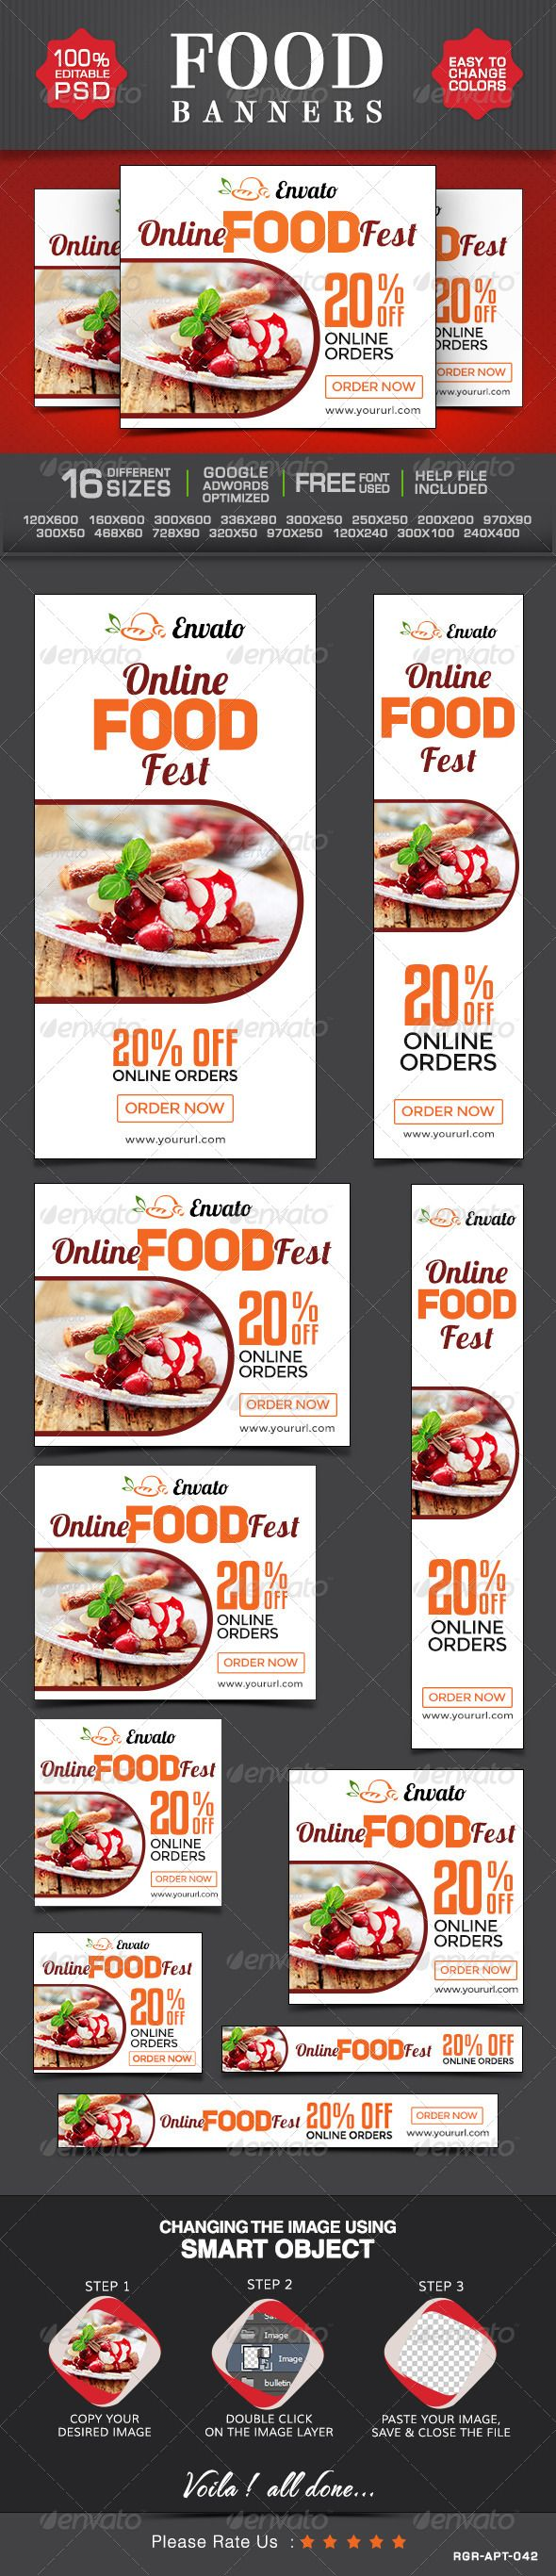 Restaurant and Cafe Banners Template PSD | Buy and Download: http://graphicriver.net/item/restaurant-and-cafe-banners/8495023?WT.ac=category_thumb&WT.z_author=BannerDesignCo&ref=ksioks